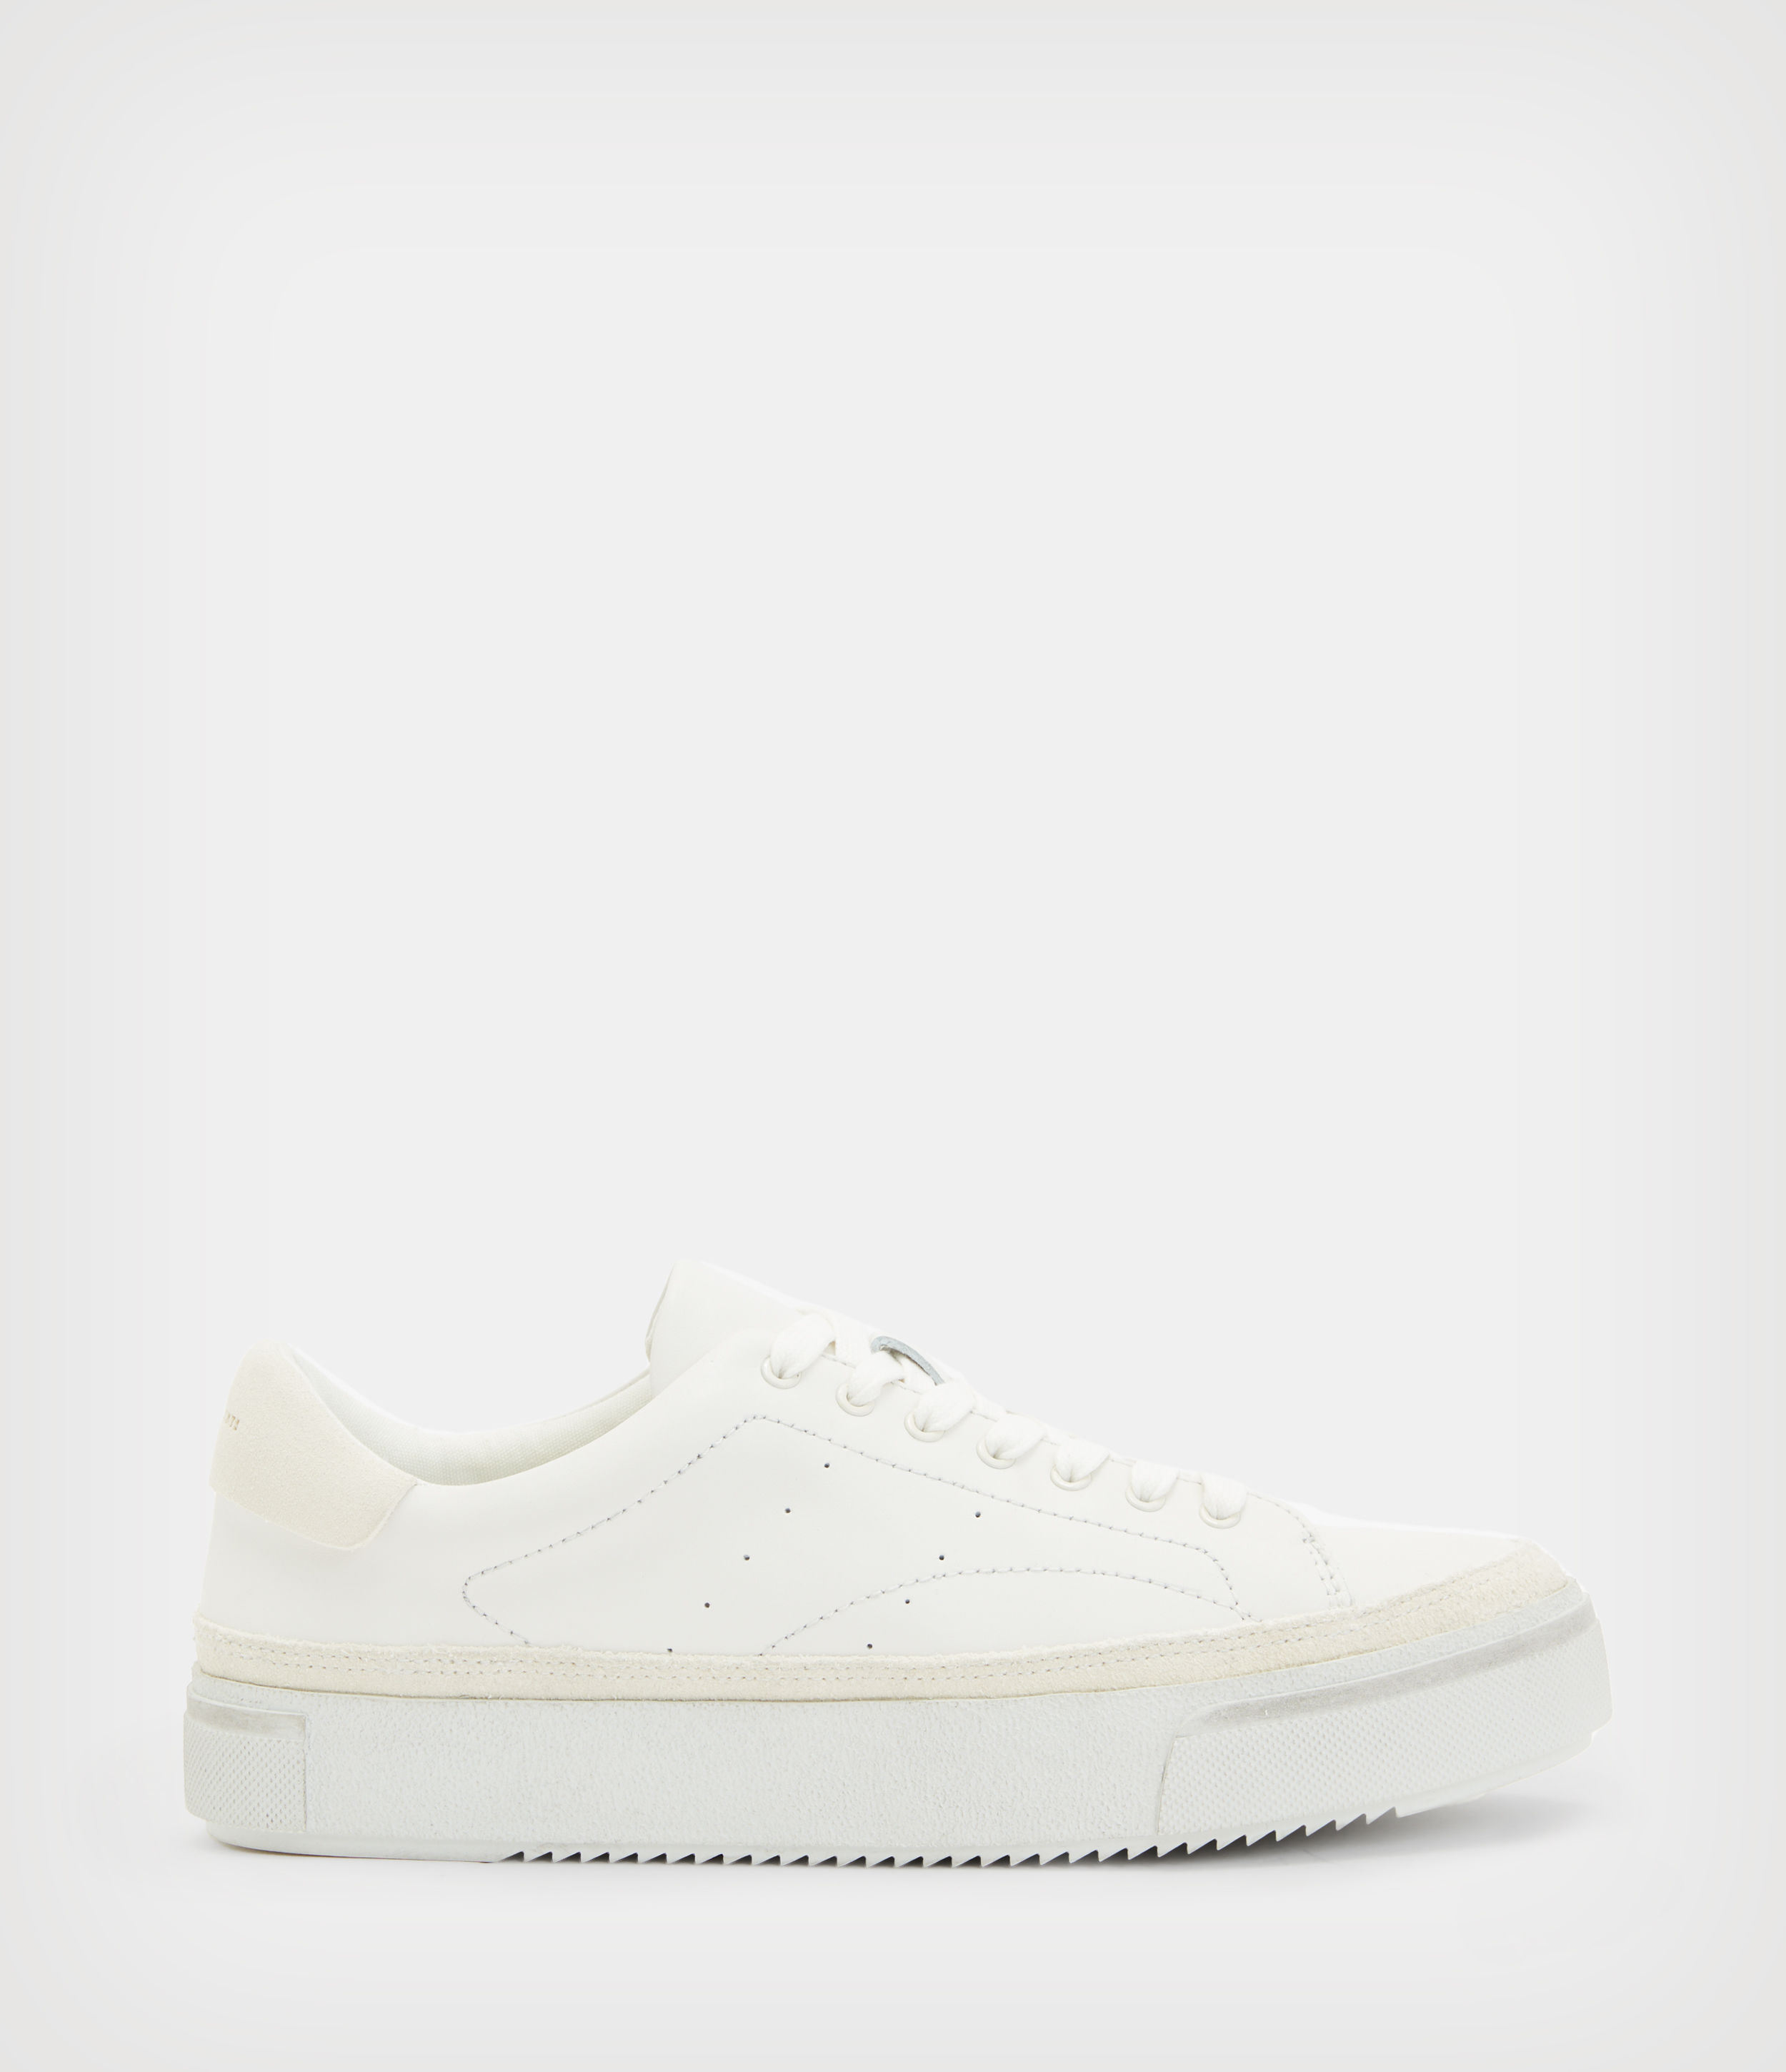 AllSaints Women's Leather Cow Trish Trainers, White, Size: UK 7